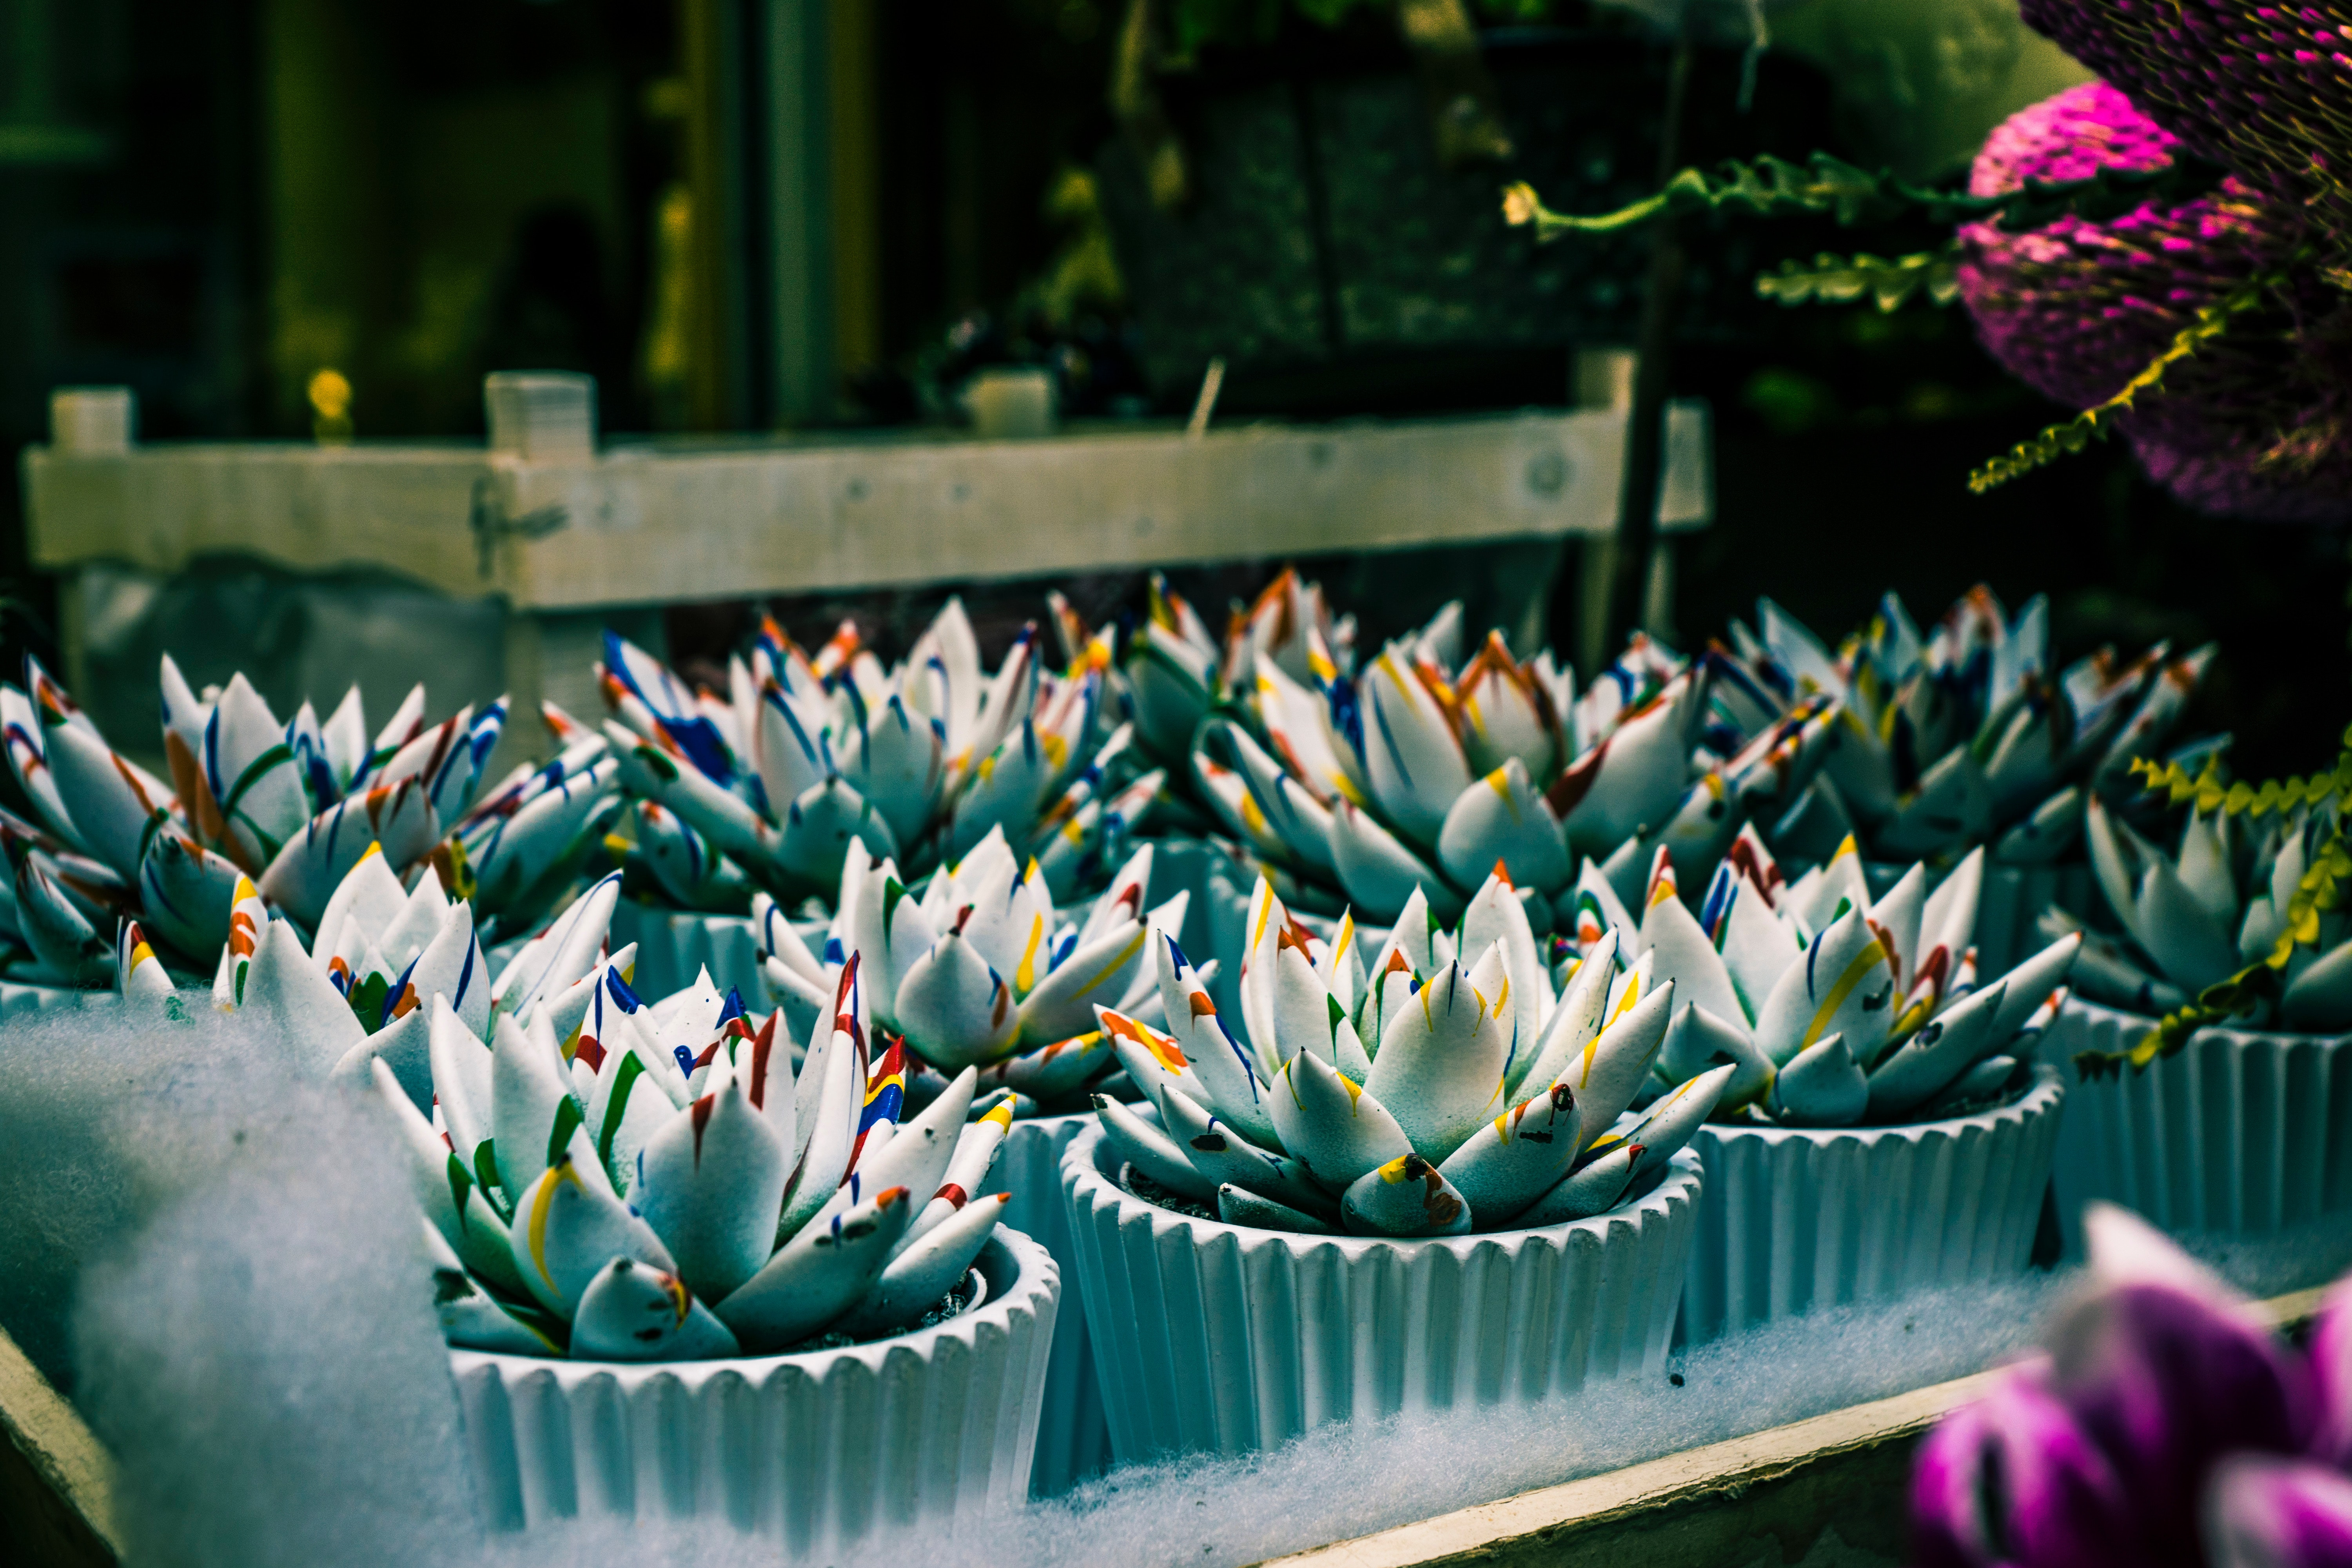 Shallow Focus Photography of Green Succulent Plants, Blooming, Flowerpots, Plants, Outdoors, HQ Photo